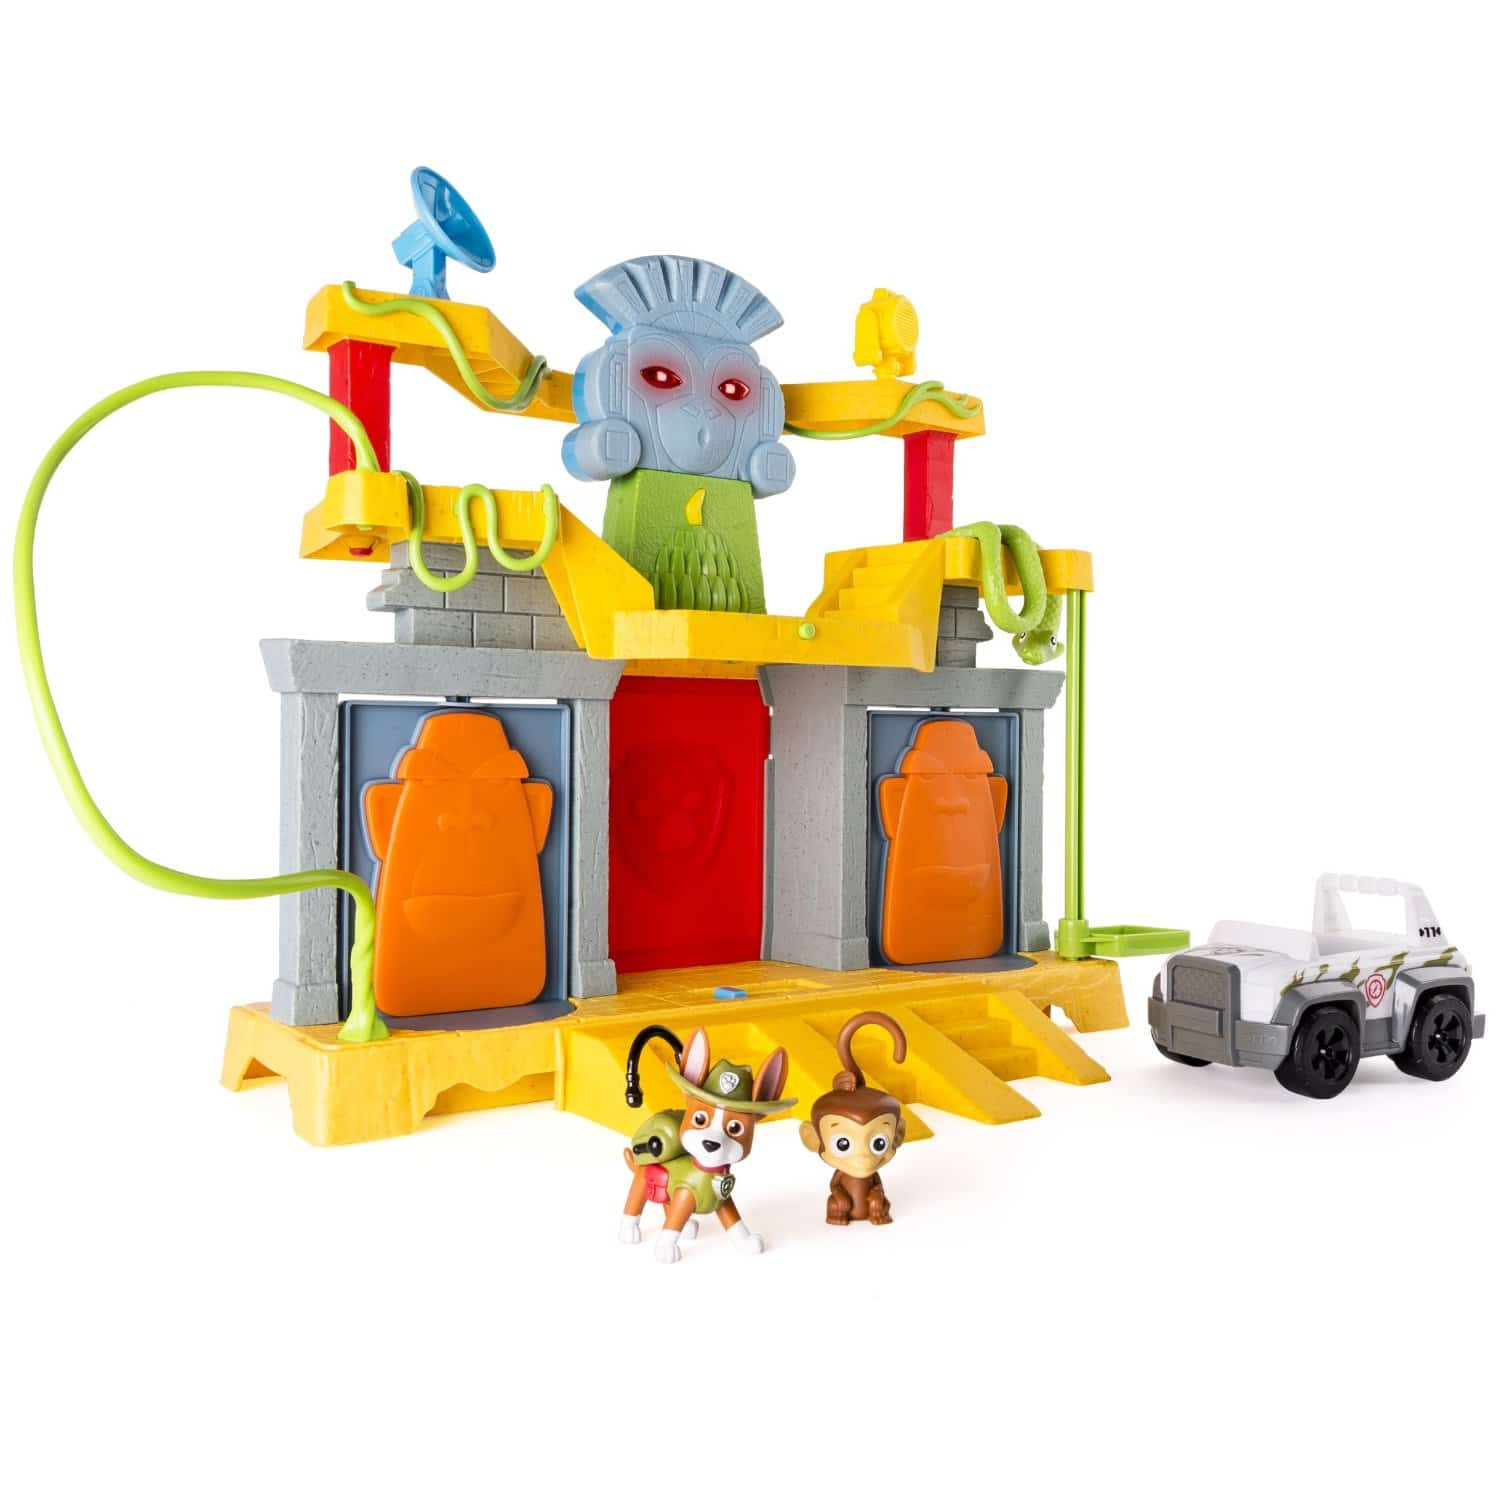 Paw Patrol - Monkey Temple Playset Review